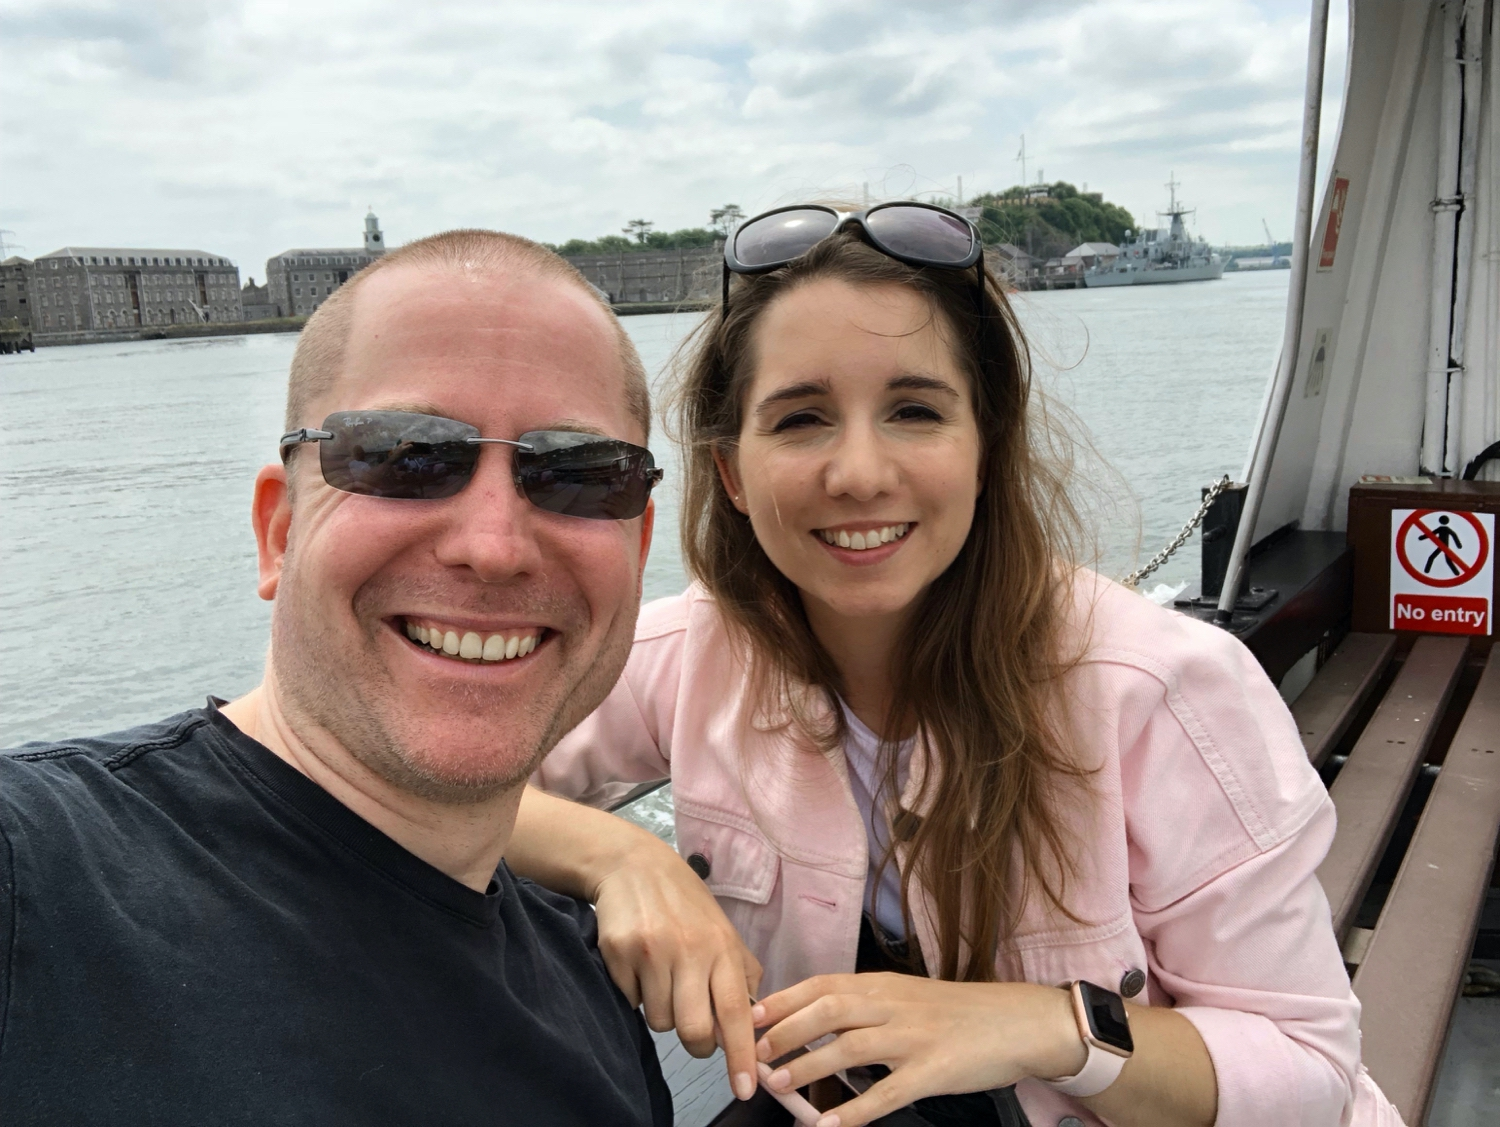 Me and Aral sitting on a tour boat.